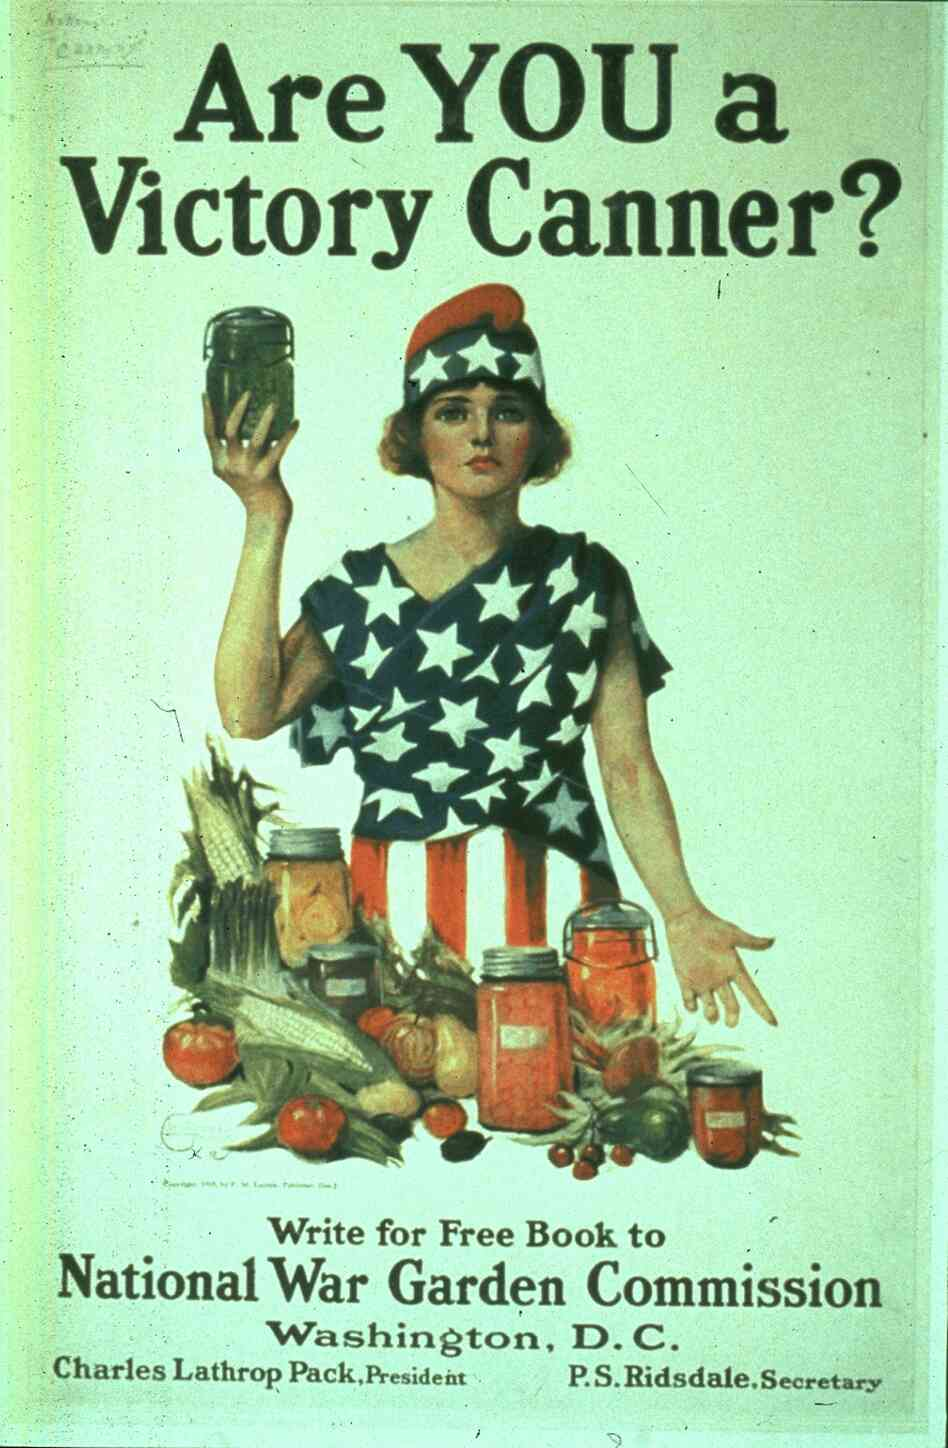 This poster from World War I encourages women to become patriotic 'victory canners'.